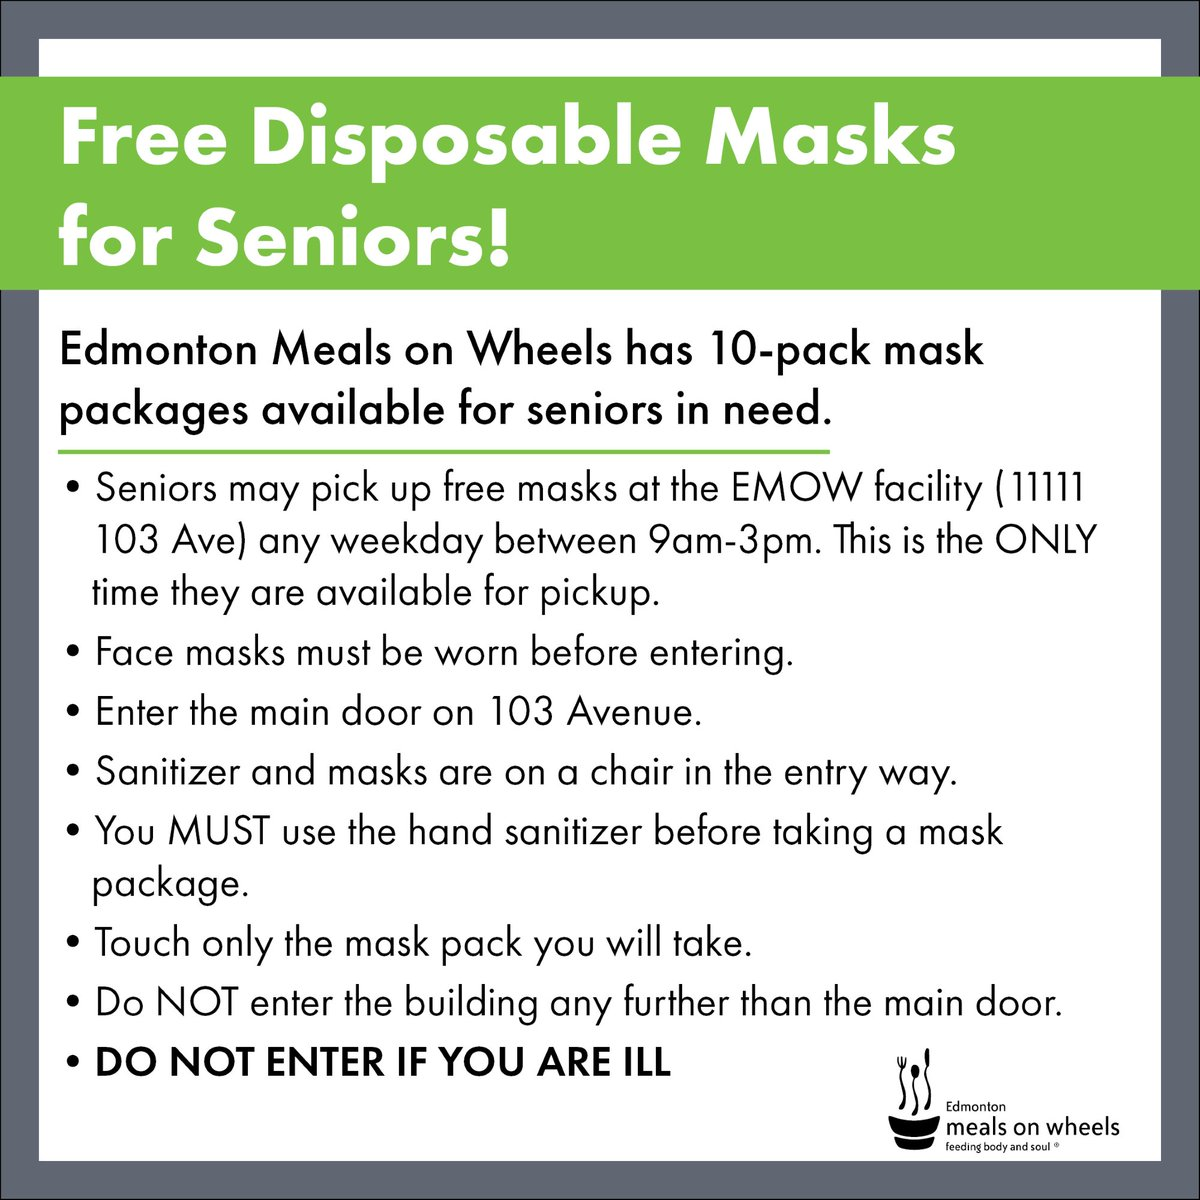 Are you a senior or know a senior in need of disposable masks? Come on down to our facility to pick up a free package of 10 disposable masks! Please review the pickup instructions listed prior to visiting our facility.  #mask #covid19 #pandemic #PPE #facemask #safety #coronavirus https://t.co/DnG0aAyLq5